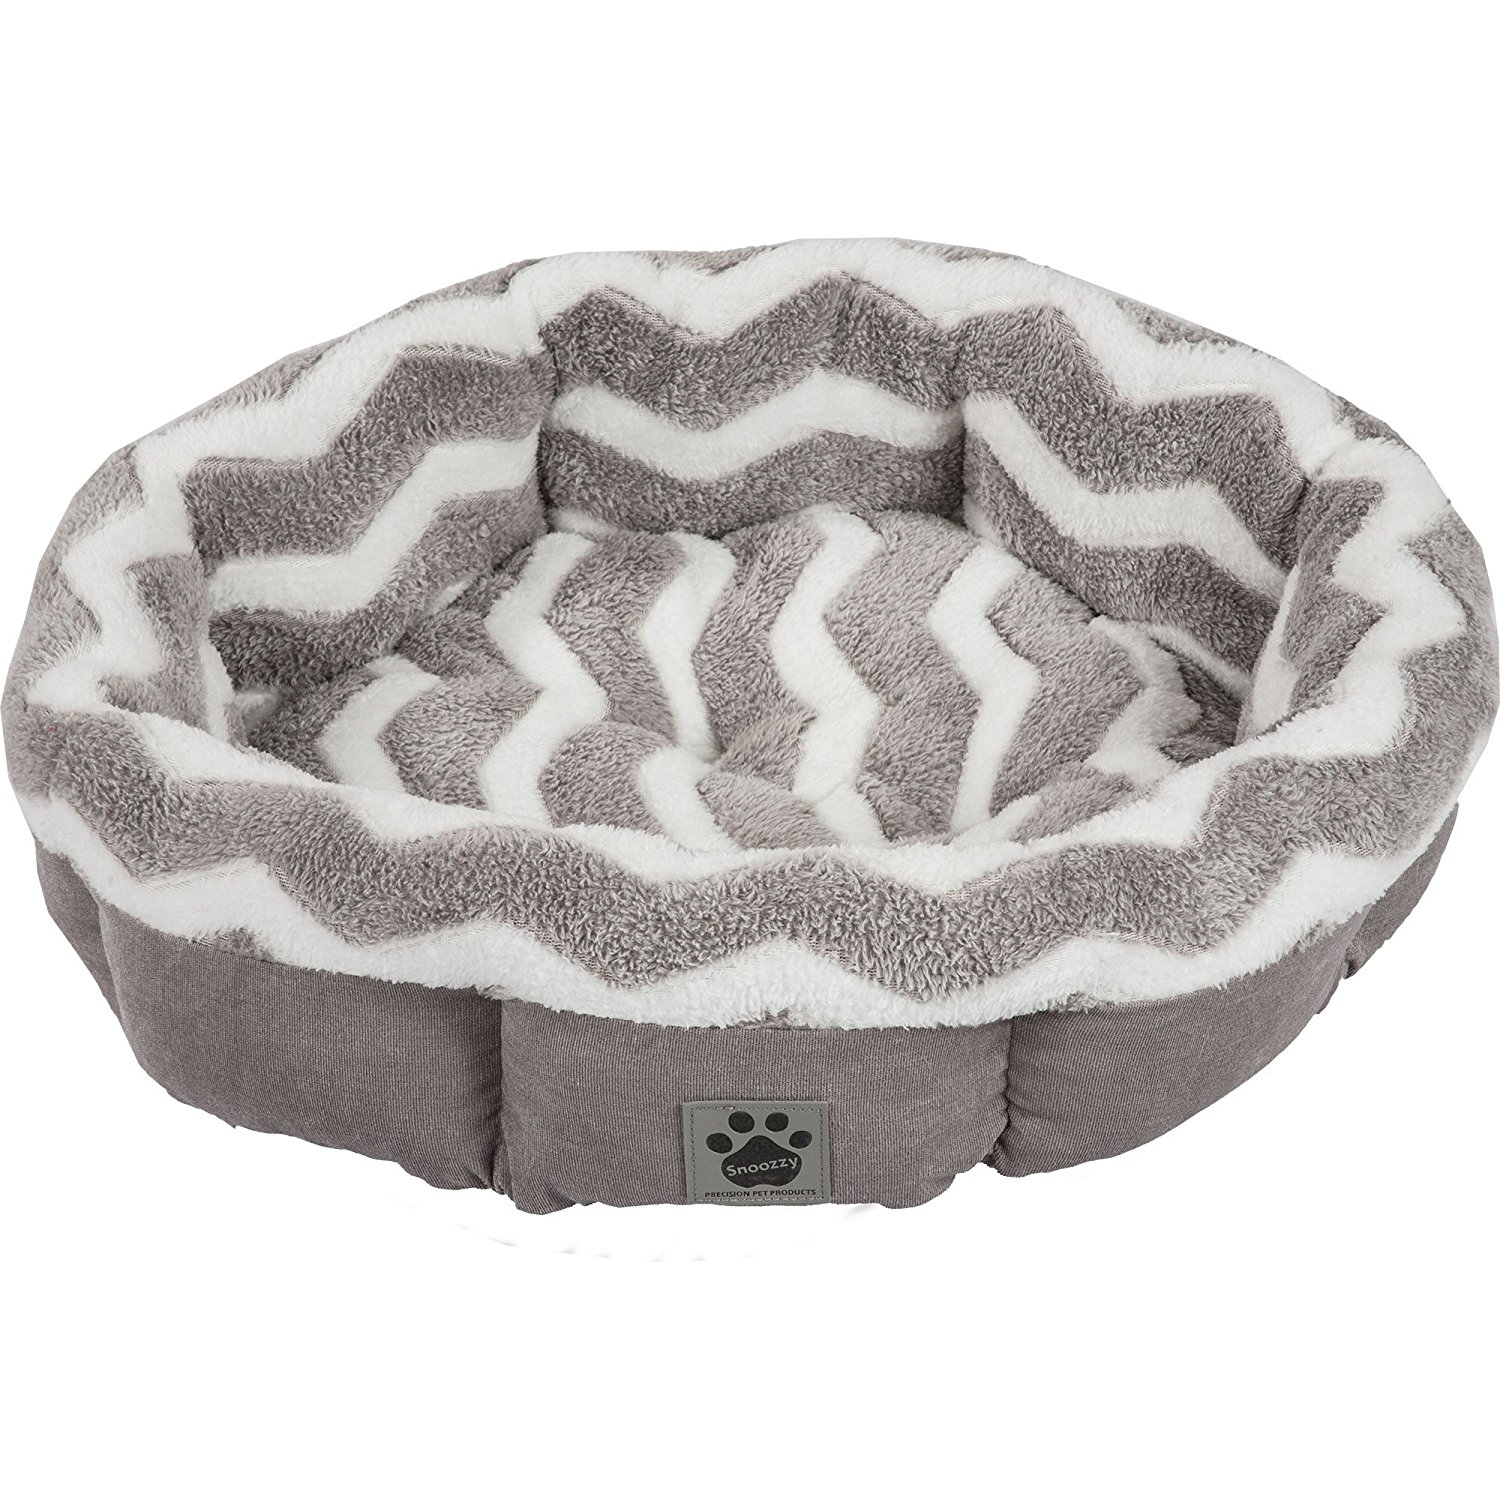 10.-Precision-Pet-SNZ-HZZ-Shearling-Round-Bed 10 Best Dog Beds for Small Dogs